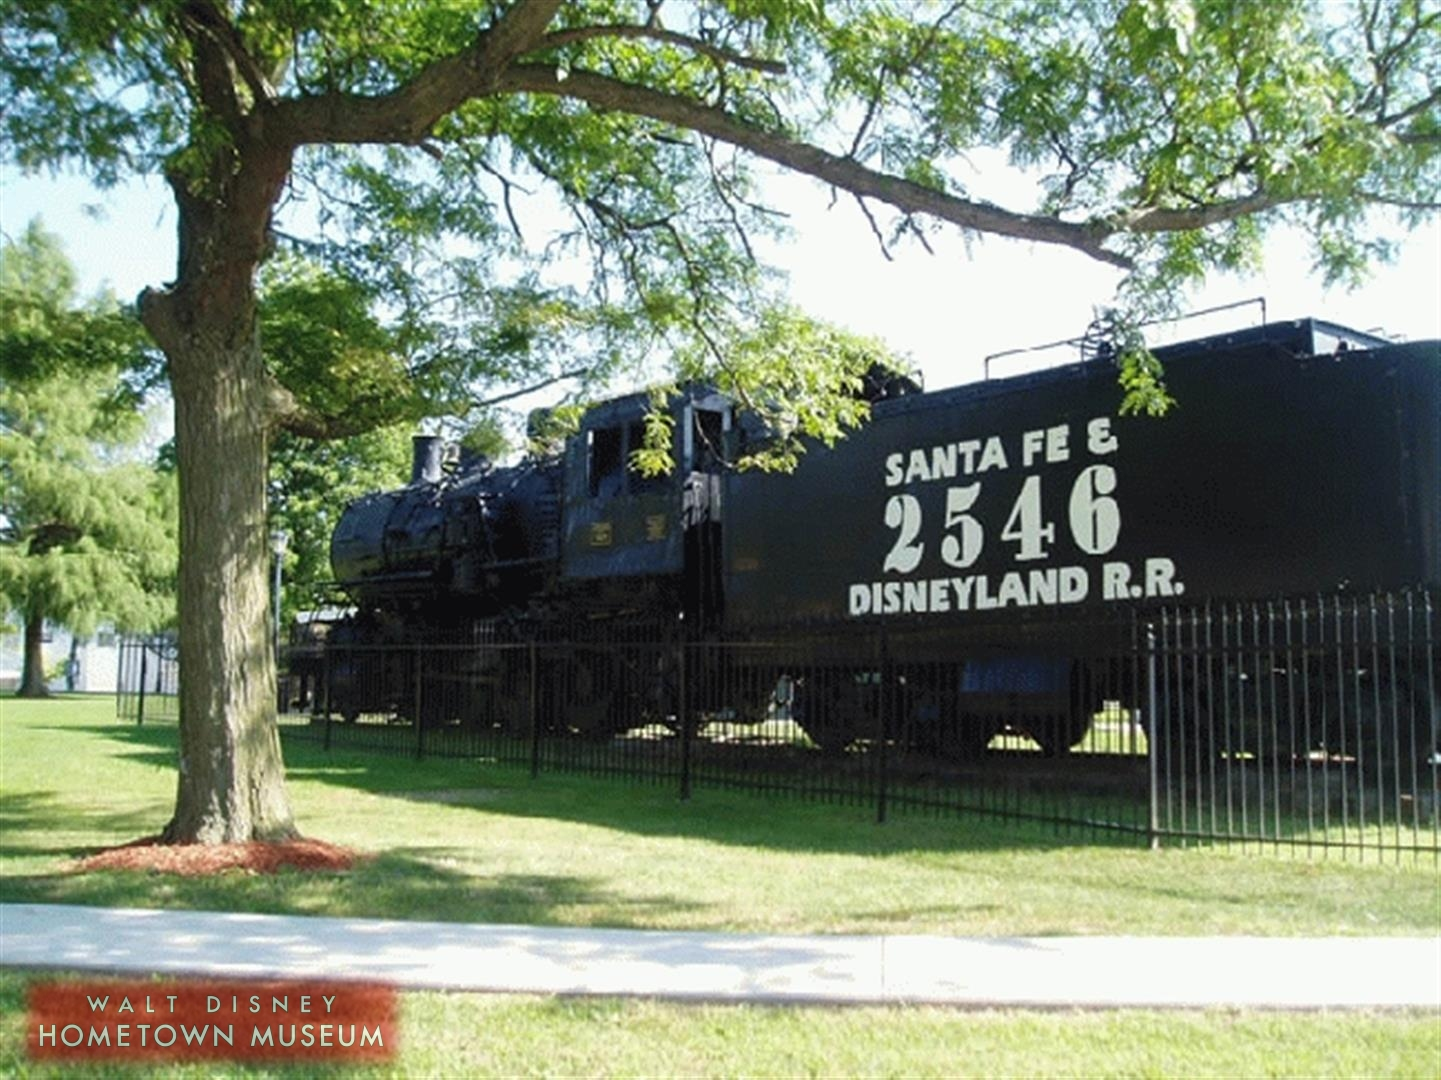 Santa Fe 2546 steam engine in E.P. Ripley Park, Marceline, MO